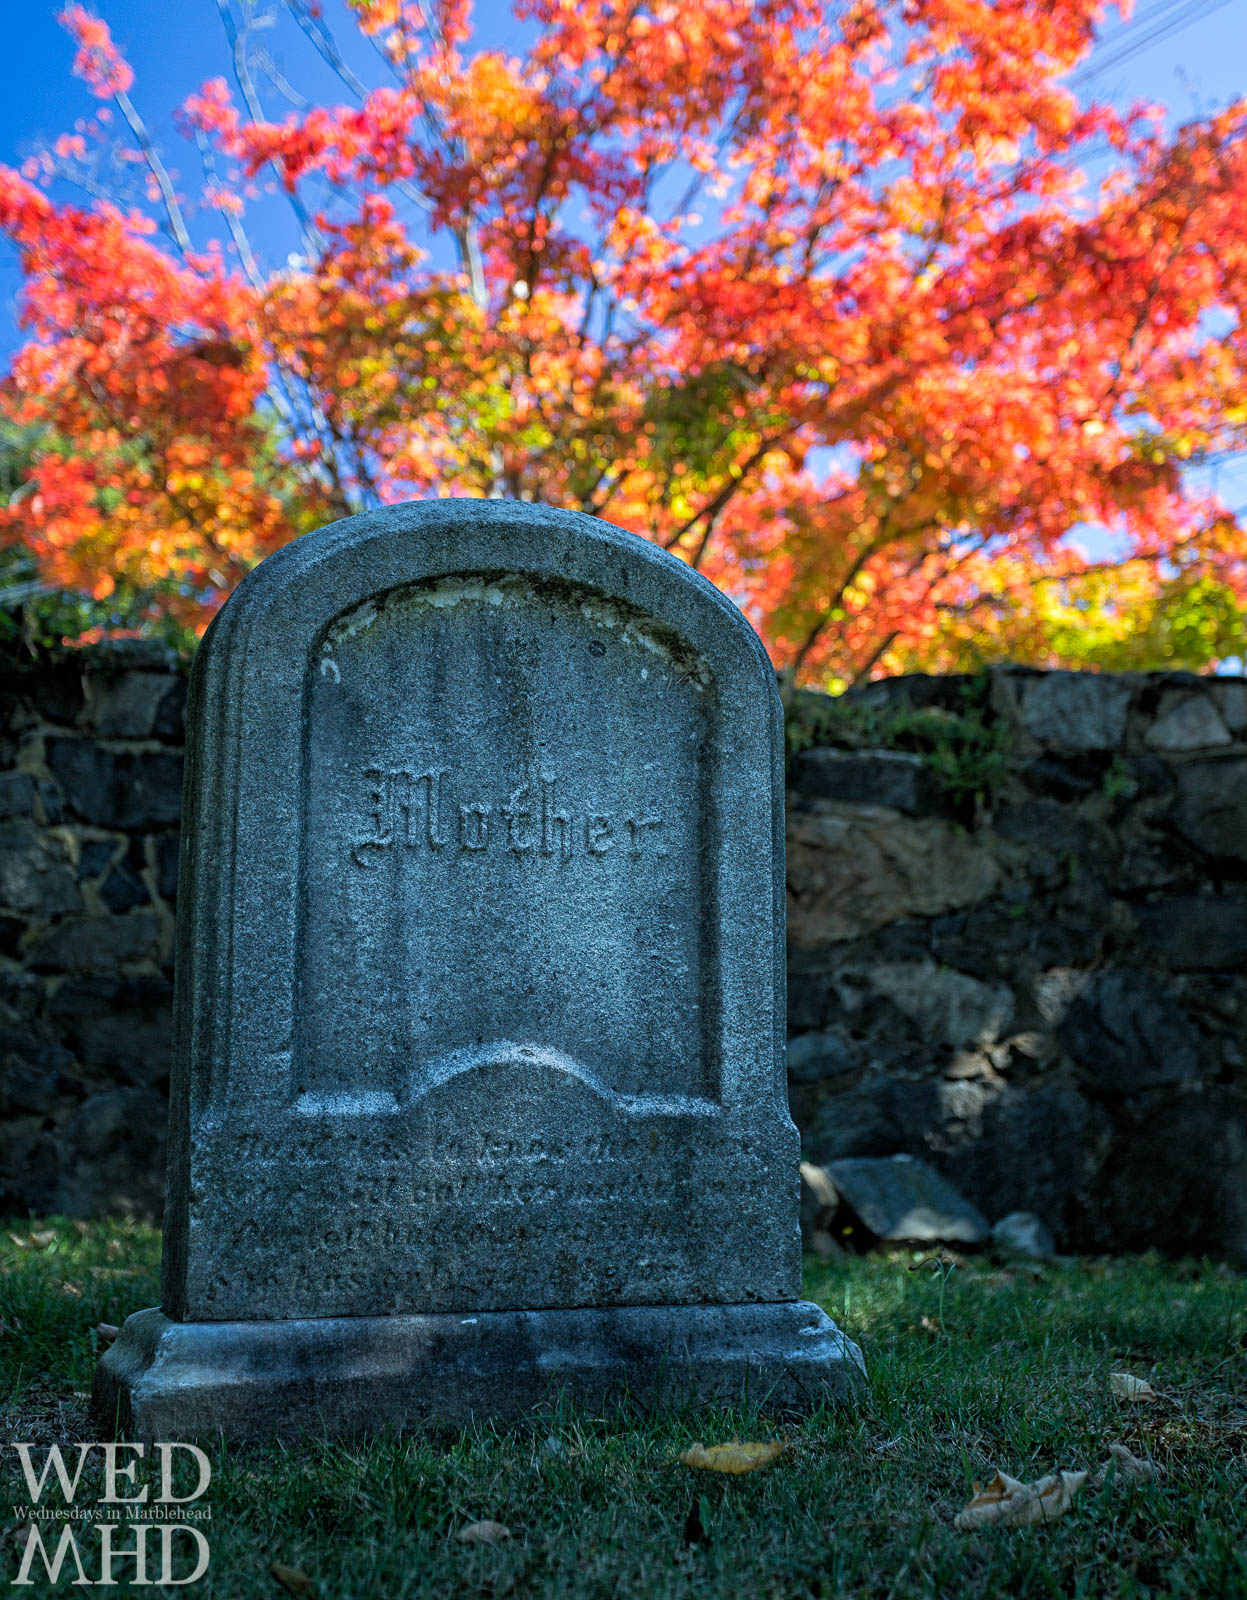 A halloween image of a simple gravestone engraved with the word Mother lies beneath a maple tree in full bloom